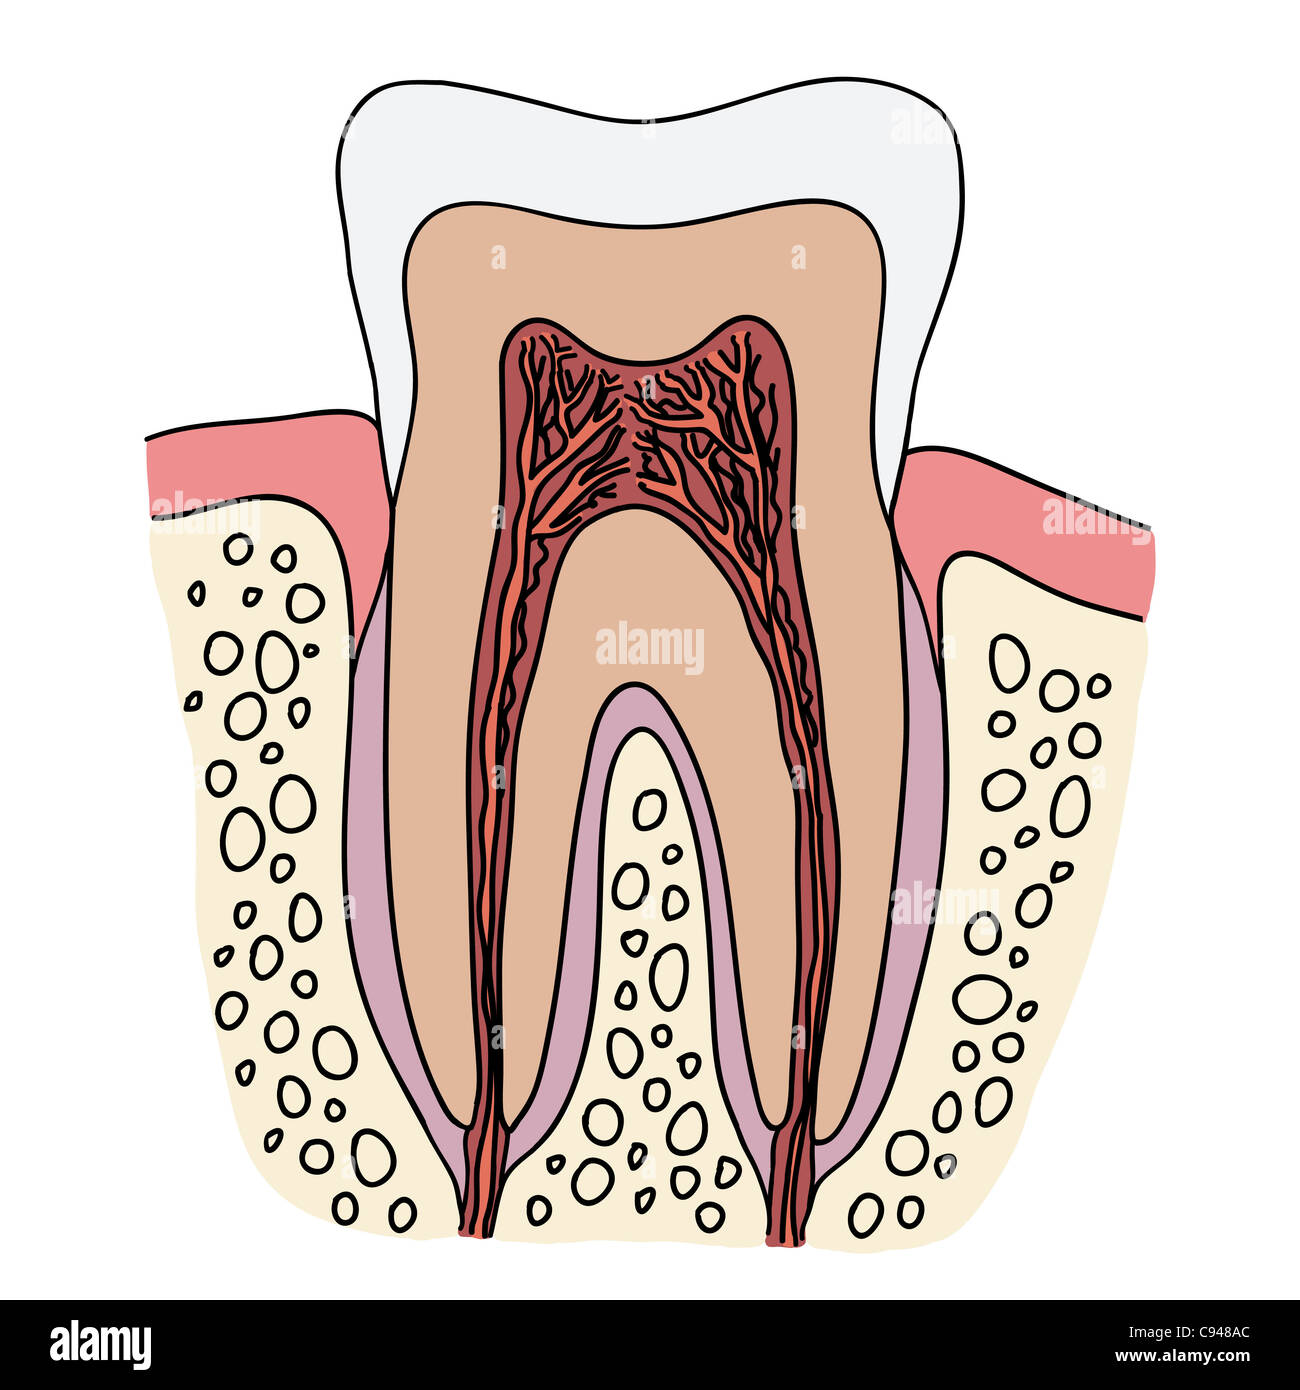 Anatomic Root Of The Tooth Stock Photos & Anatomic Root Of The Tooth ...